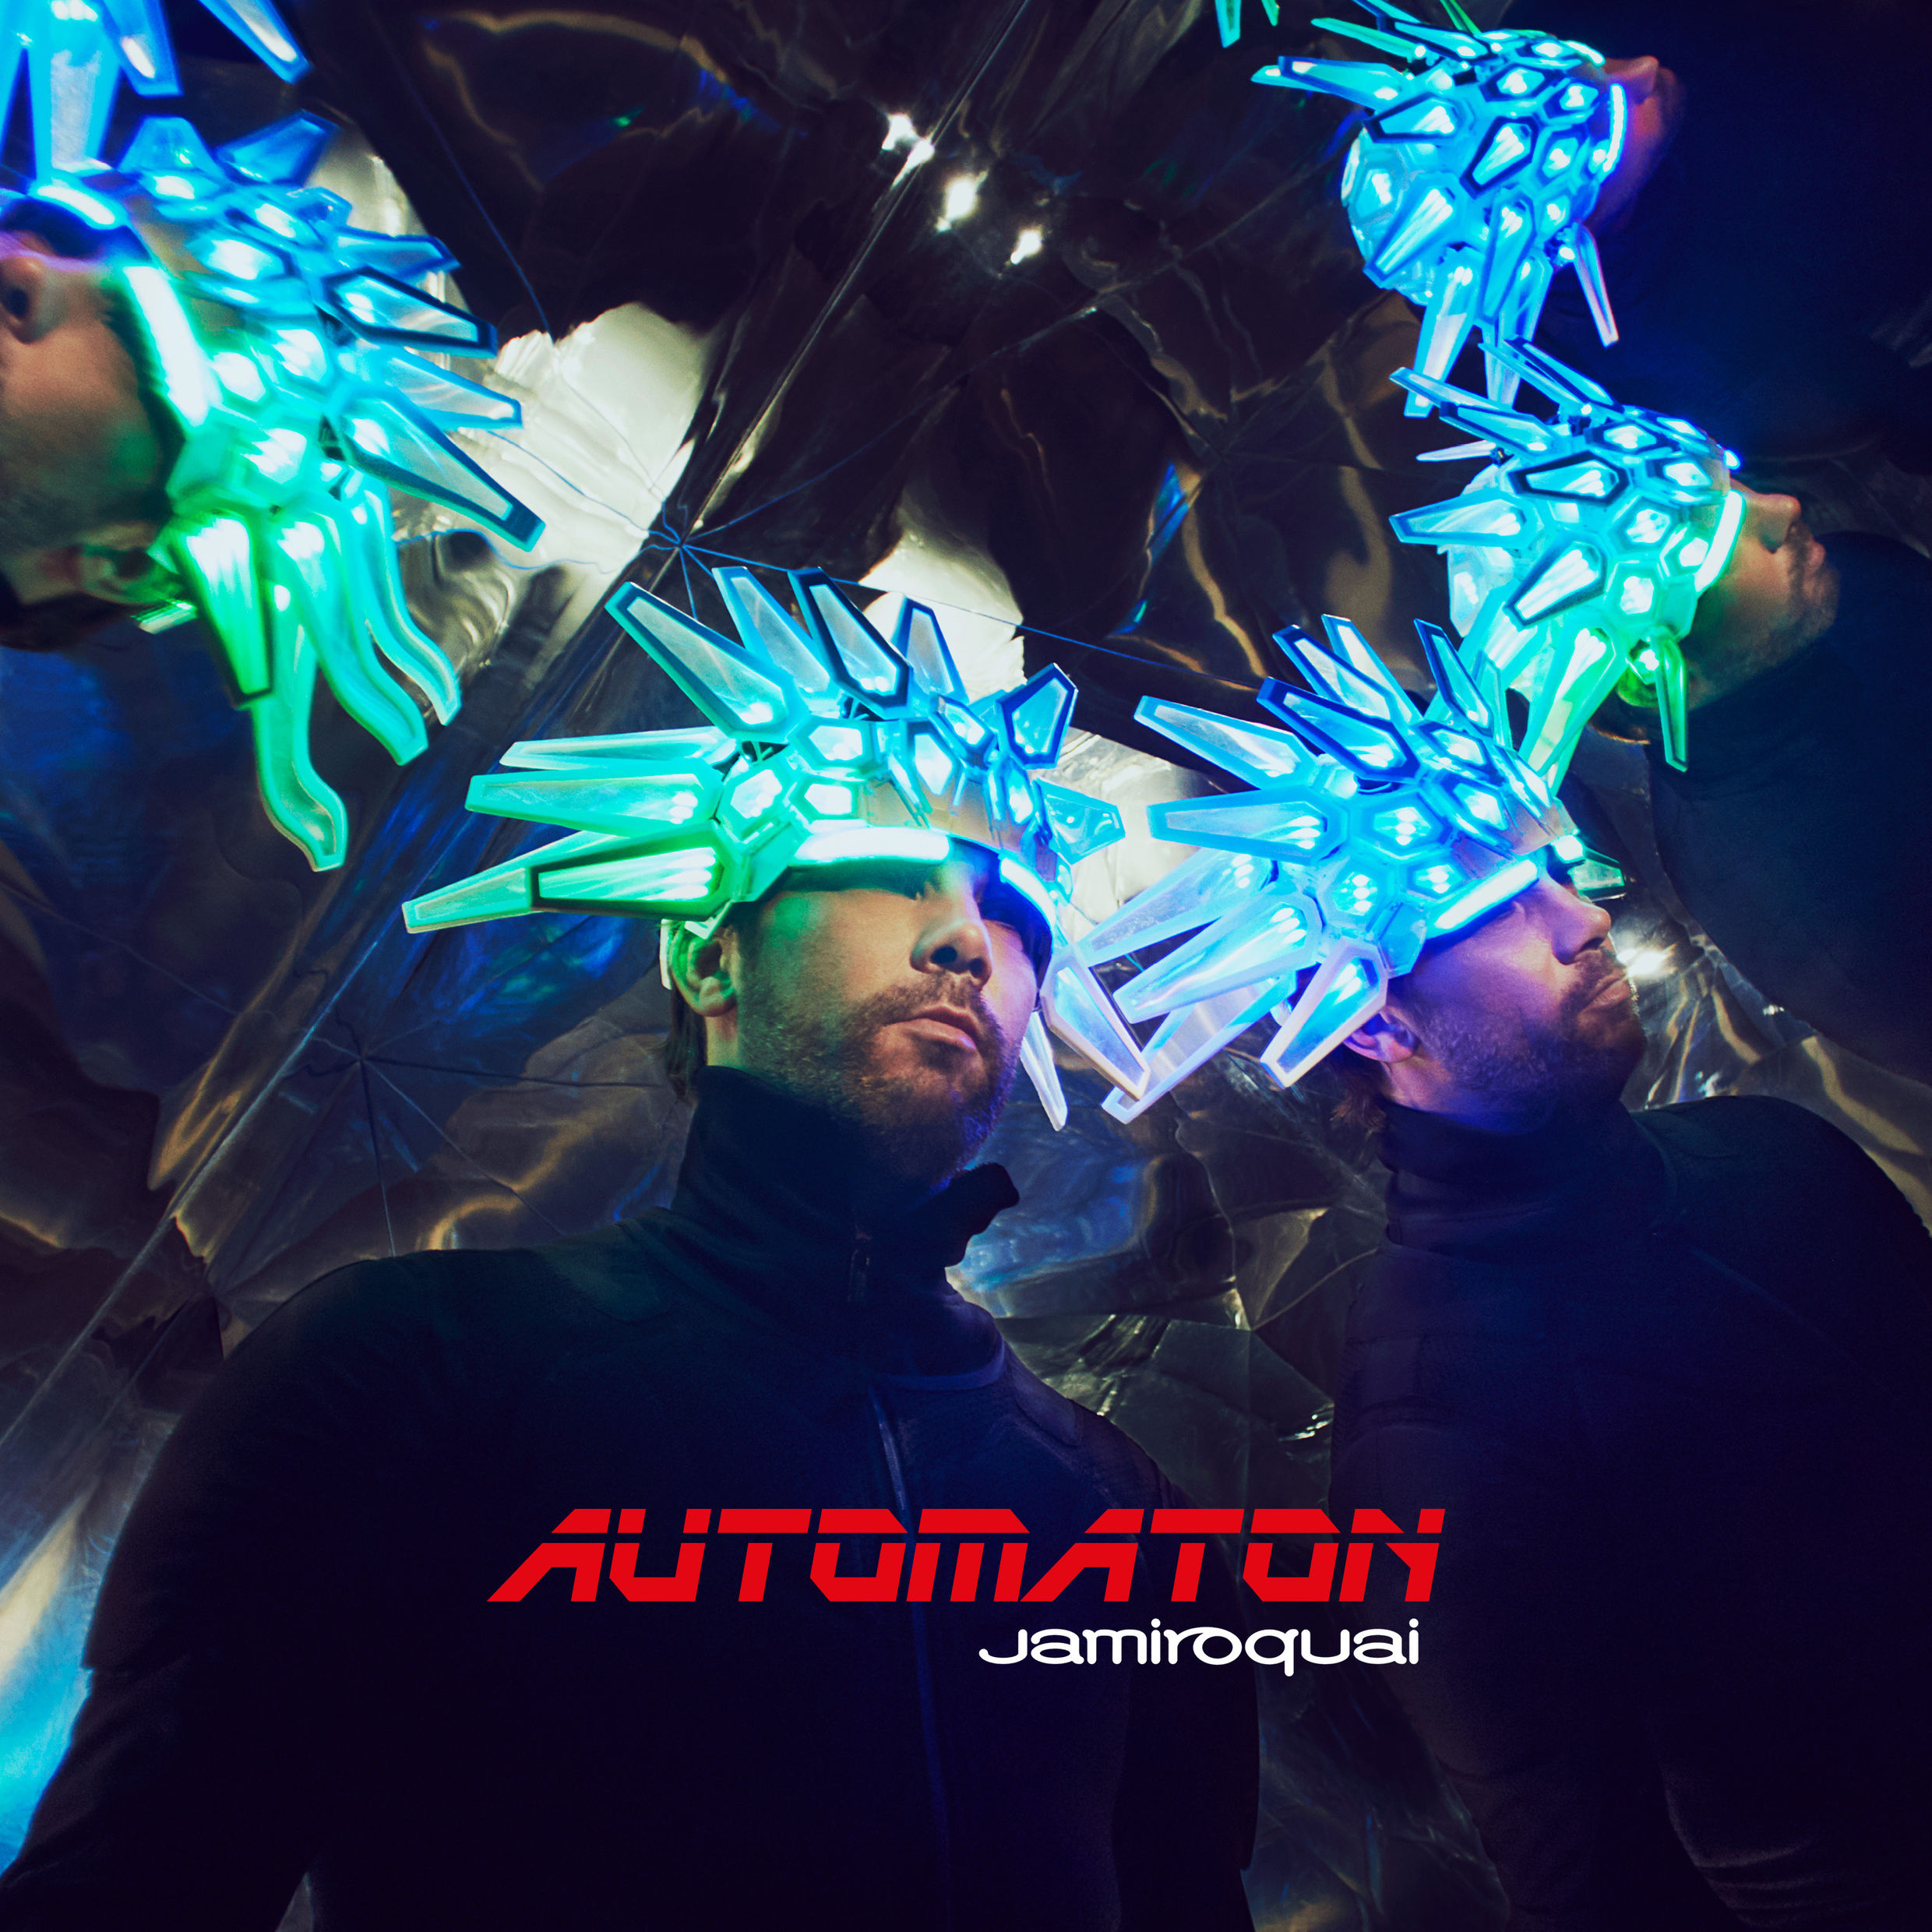 Jamiroquai keeps the audience enthralled at London's O2 Arena